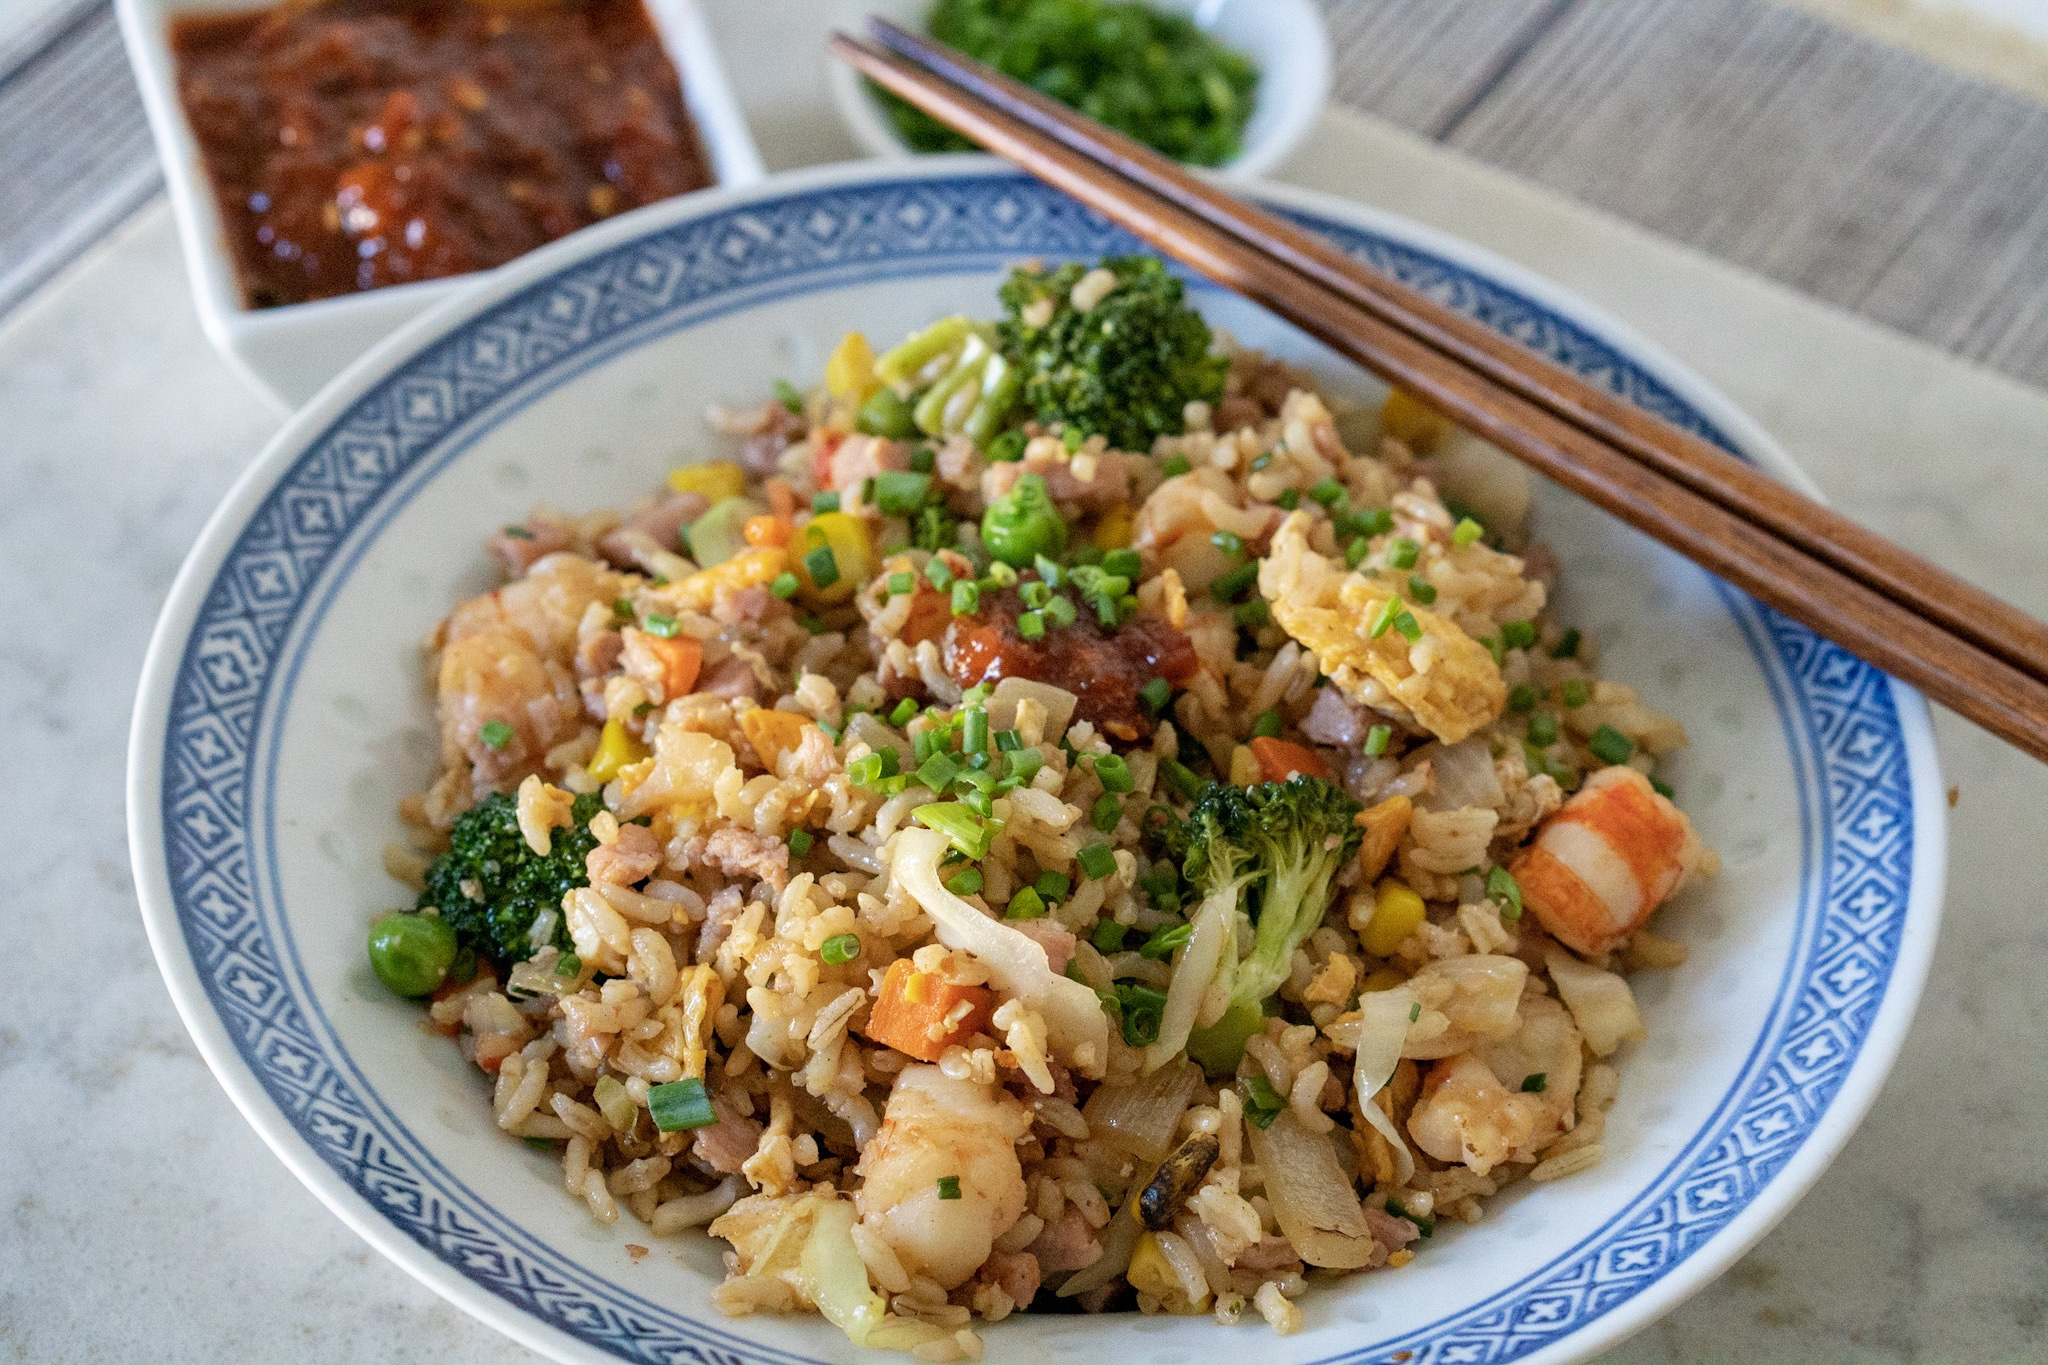 Shrimp Fried Rice with chili sauce